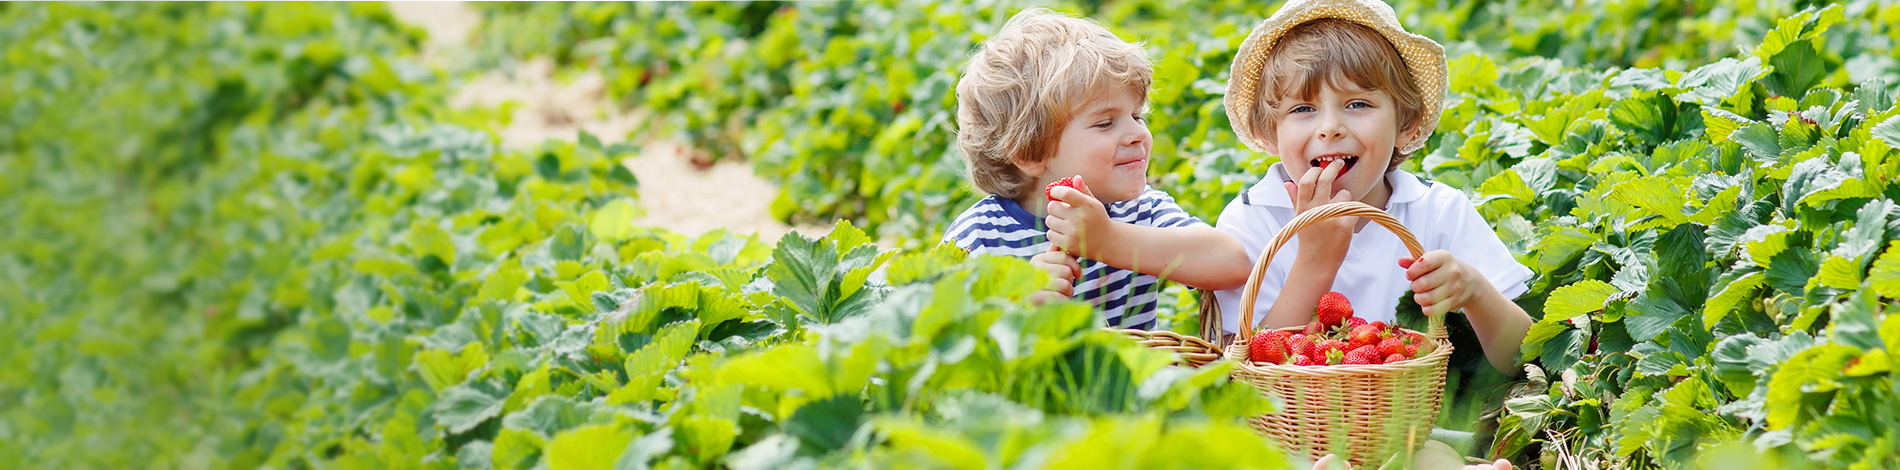 Find NC Strawberry Farms and Strawberry Consumer Information